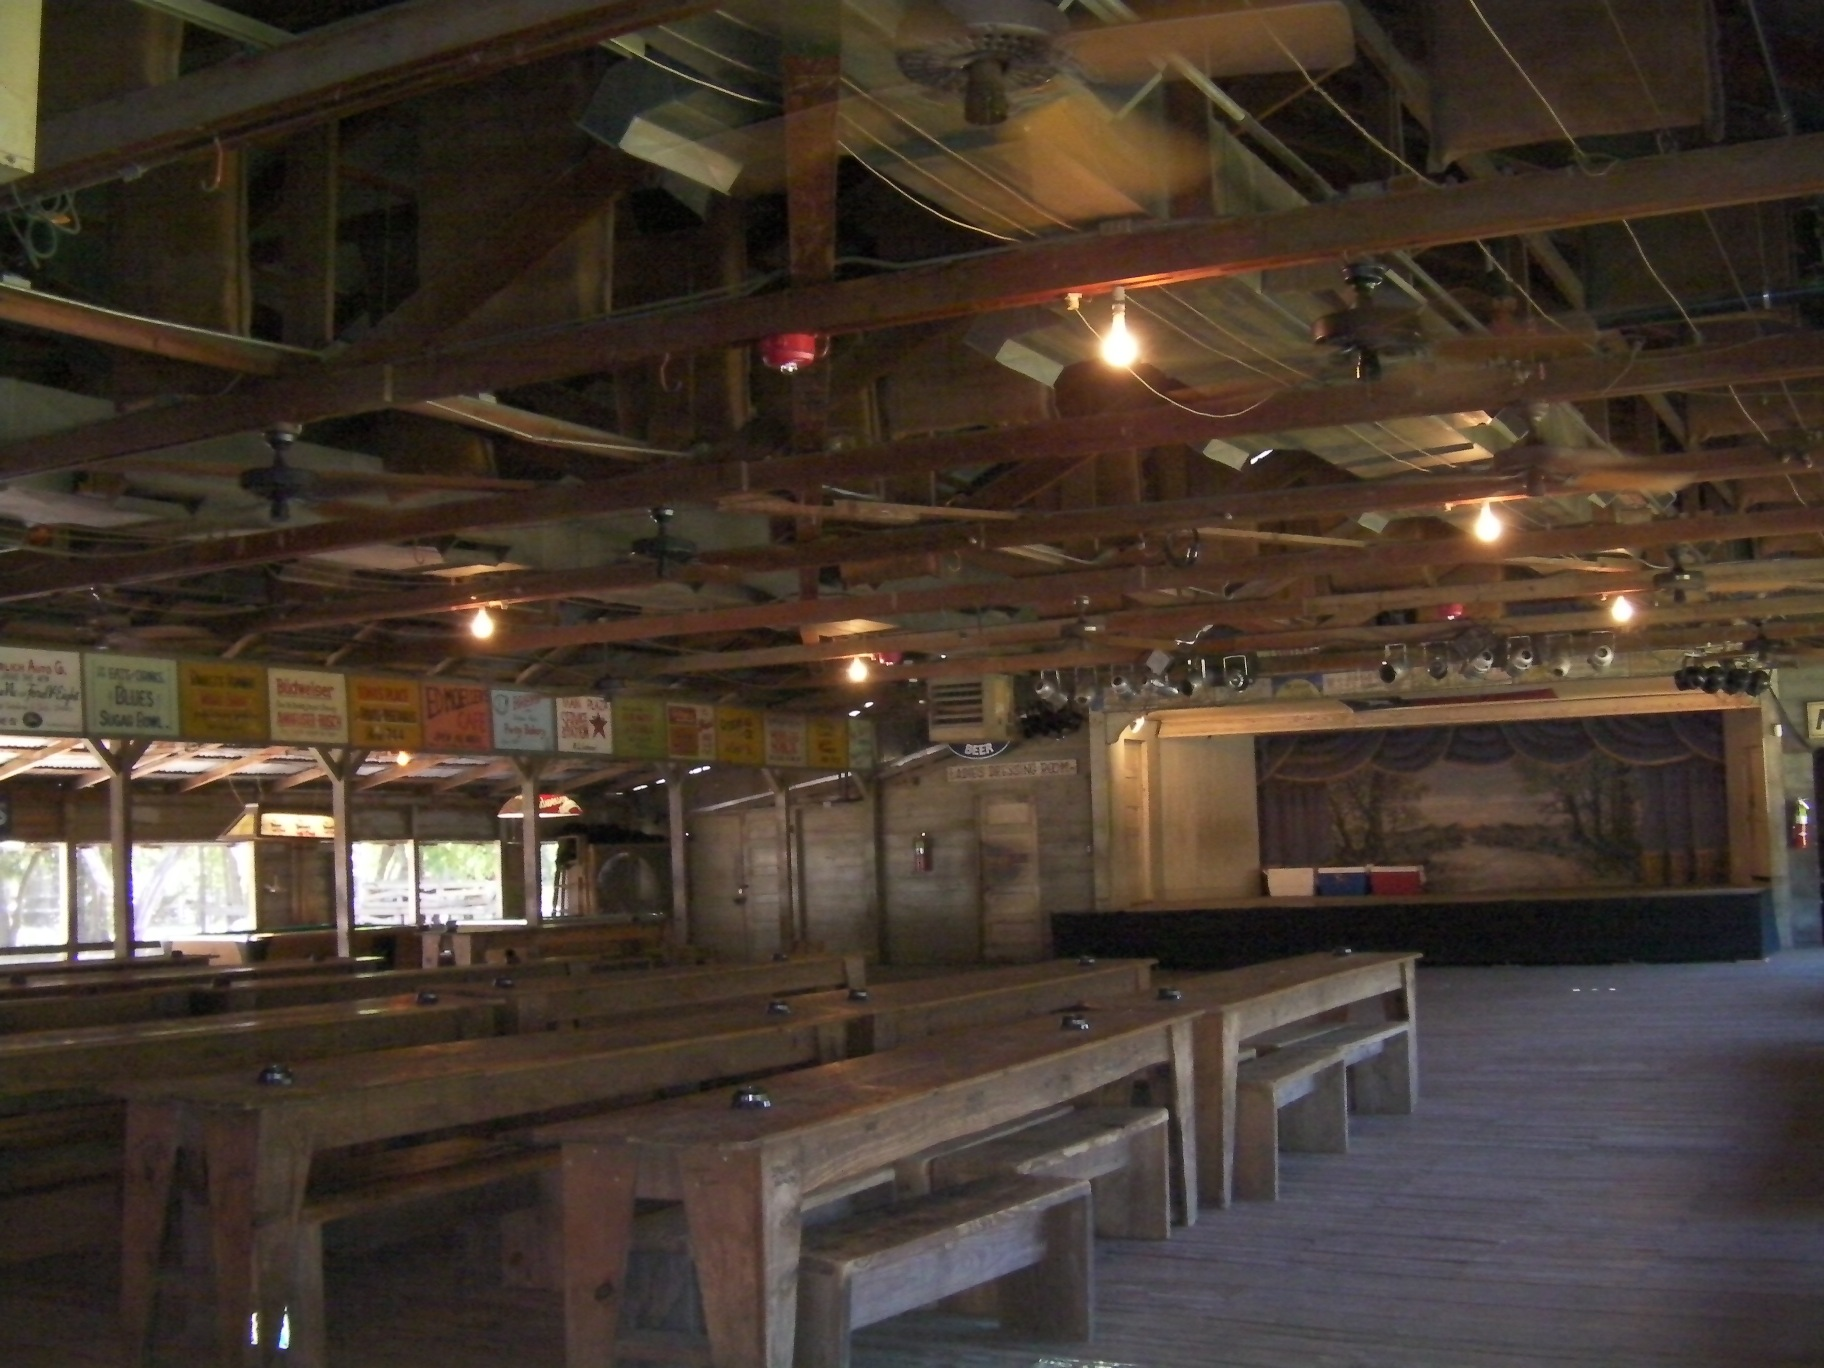 File:Gruene Hall, TX.JPG - Wikimedia Commons